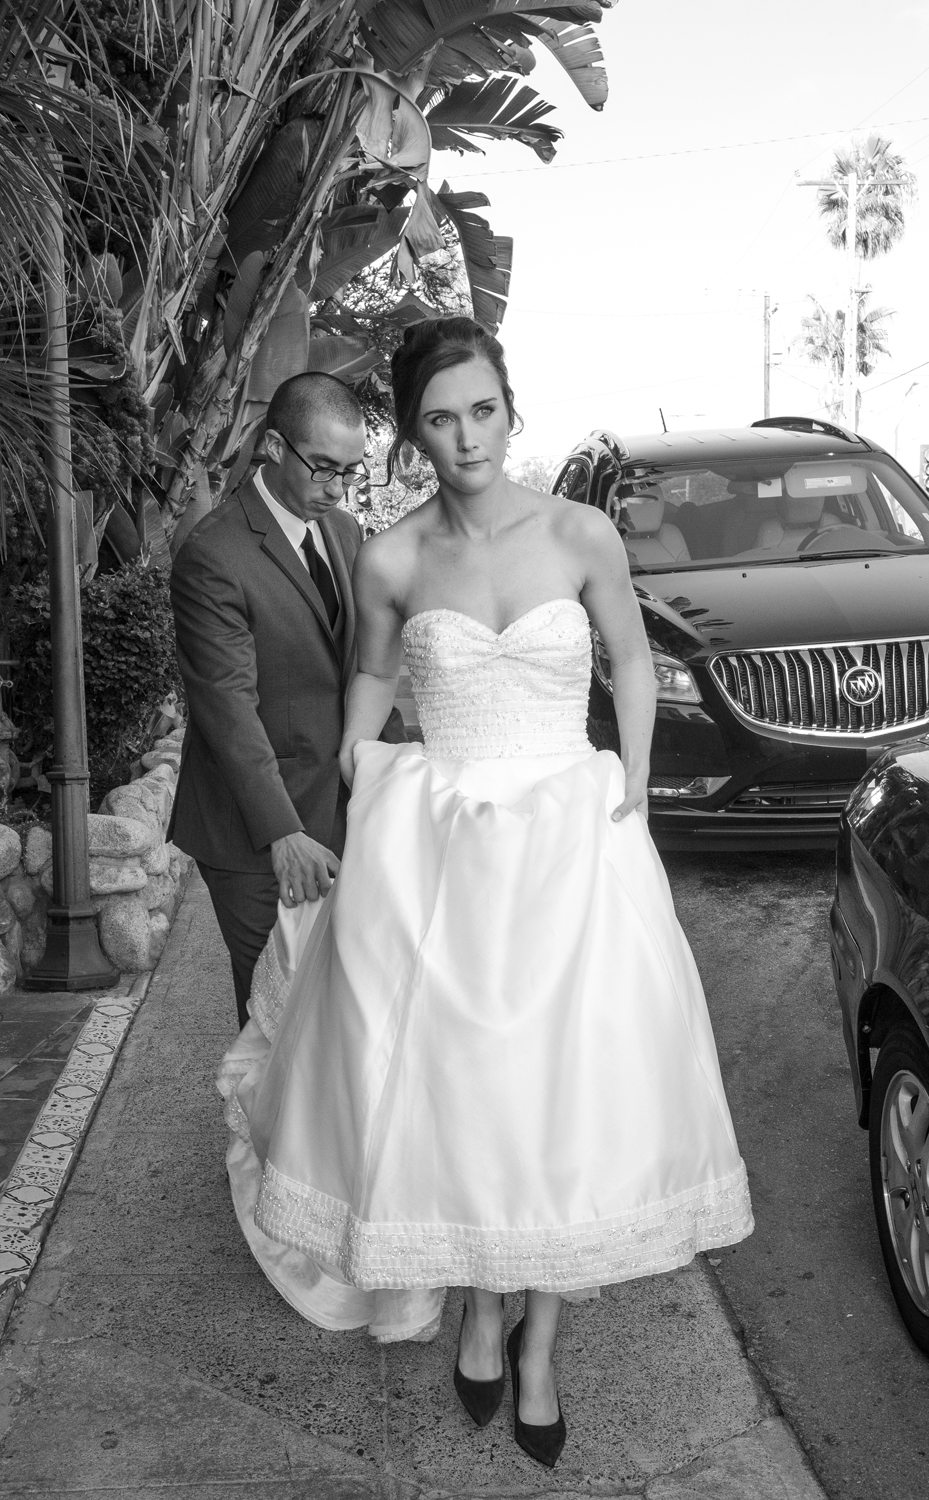 bride-walking-sidewalk-black-white.jpg